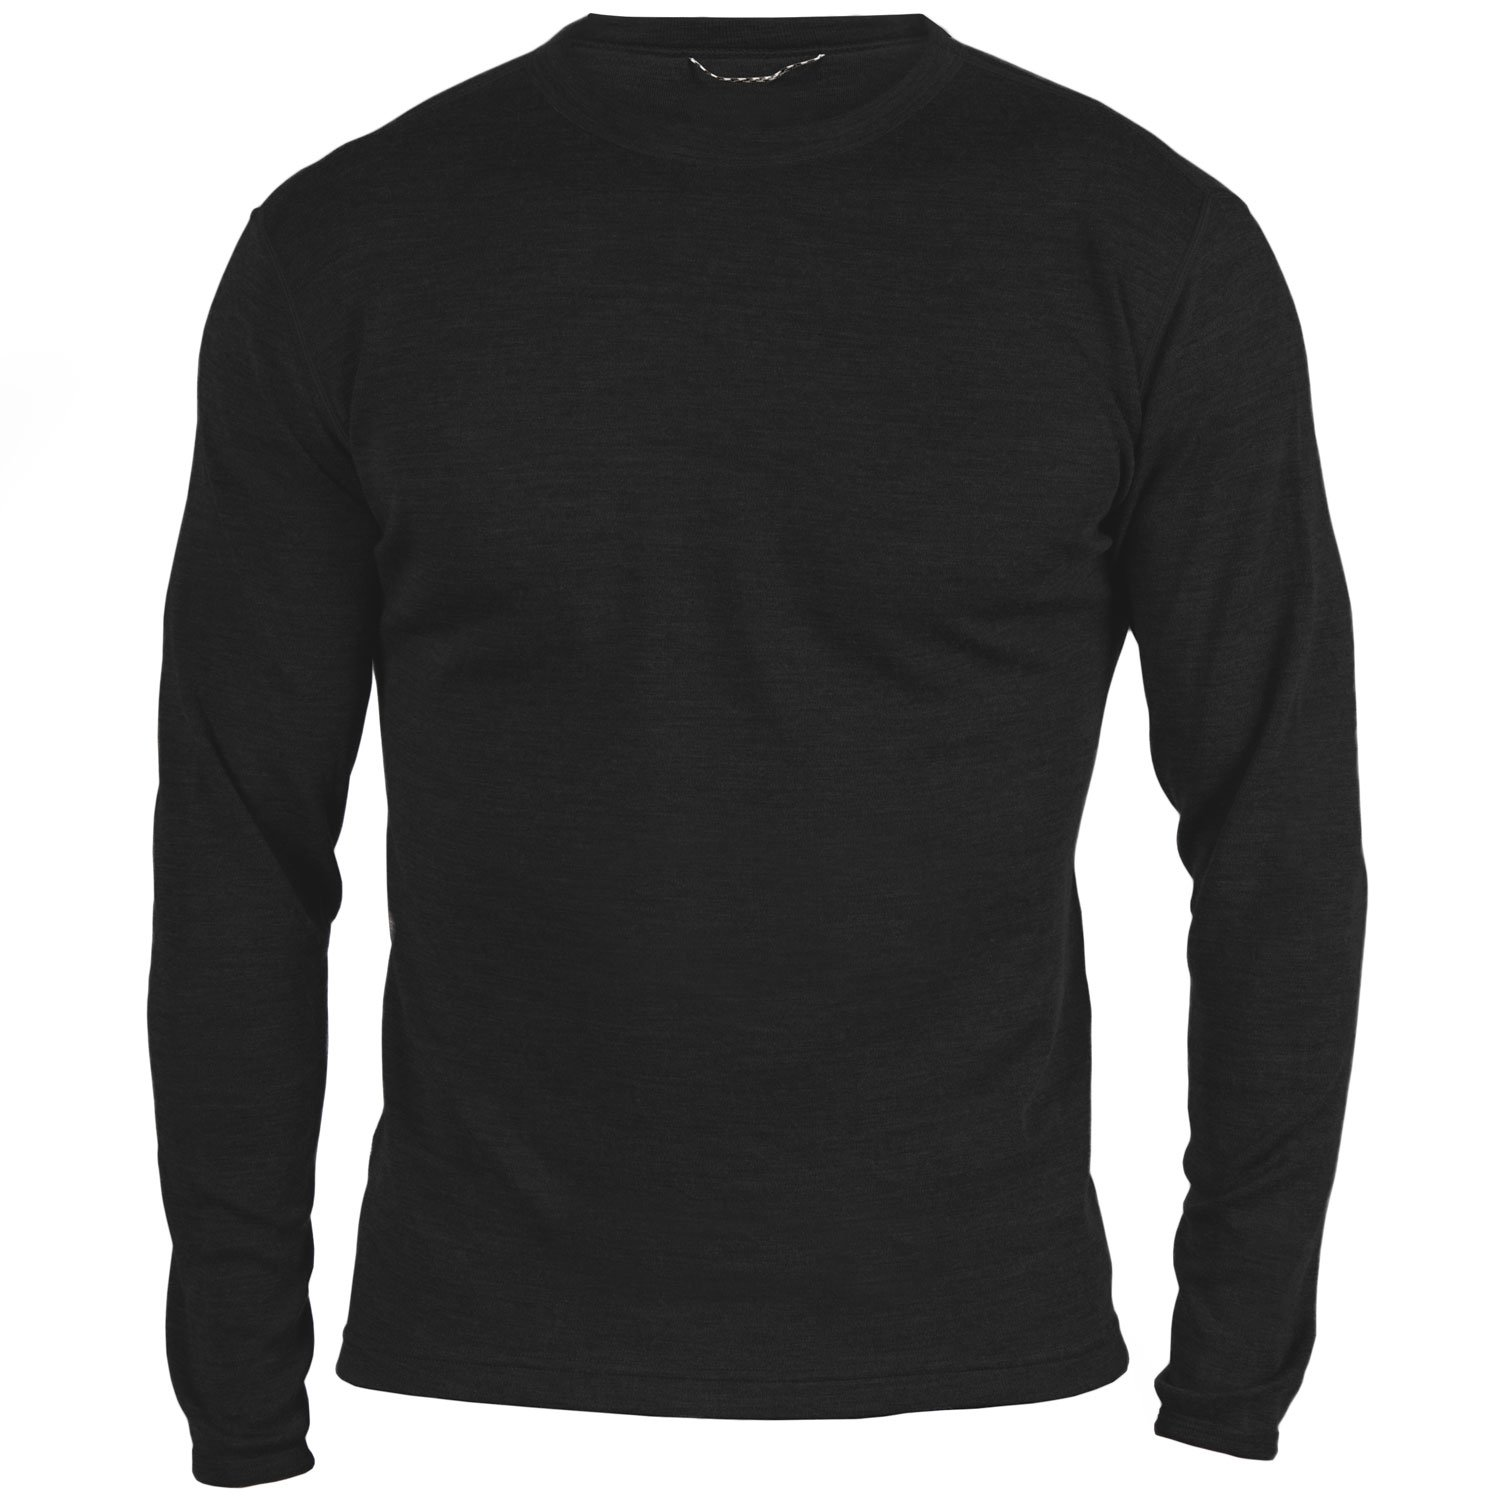 MERIWOOL Men's Merino Wool Midweight Baselayer Crew - Black/S